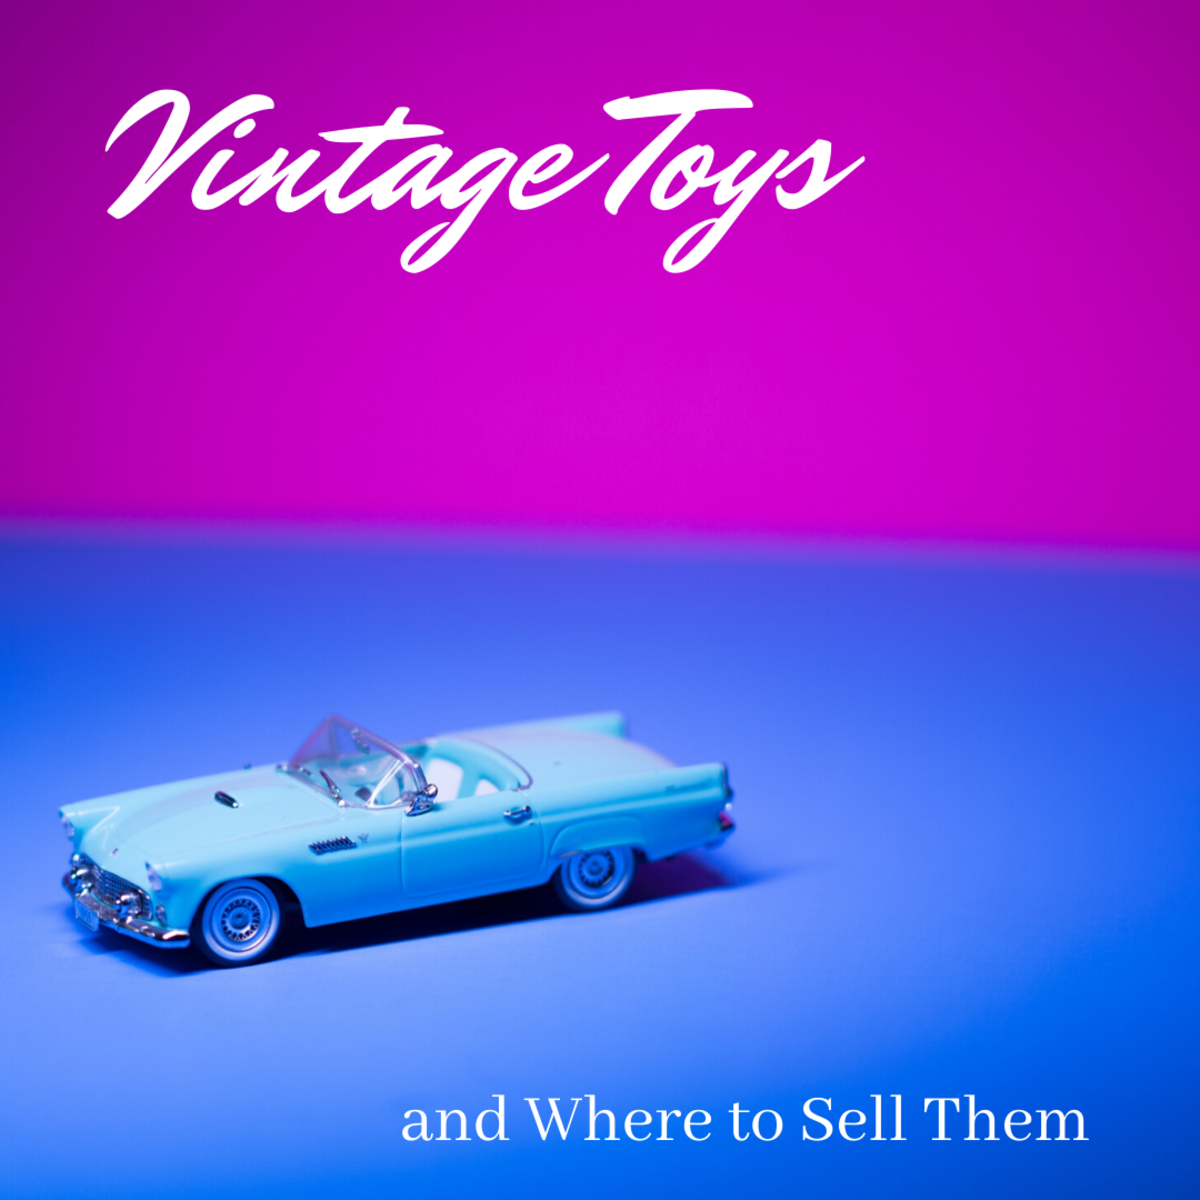 This guide will help you both determine the value of your vintage toys and hopefully find some places to sell them.